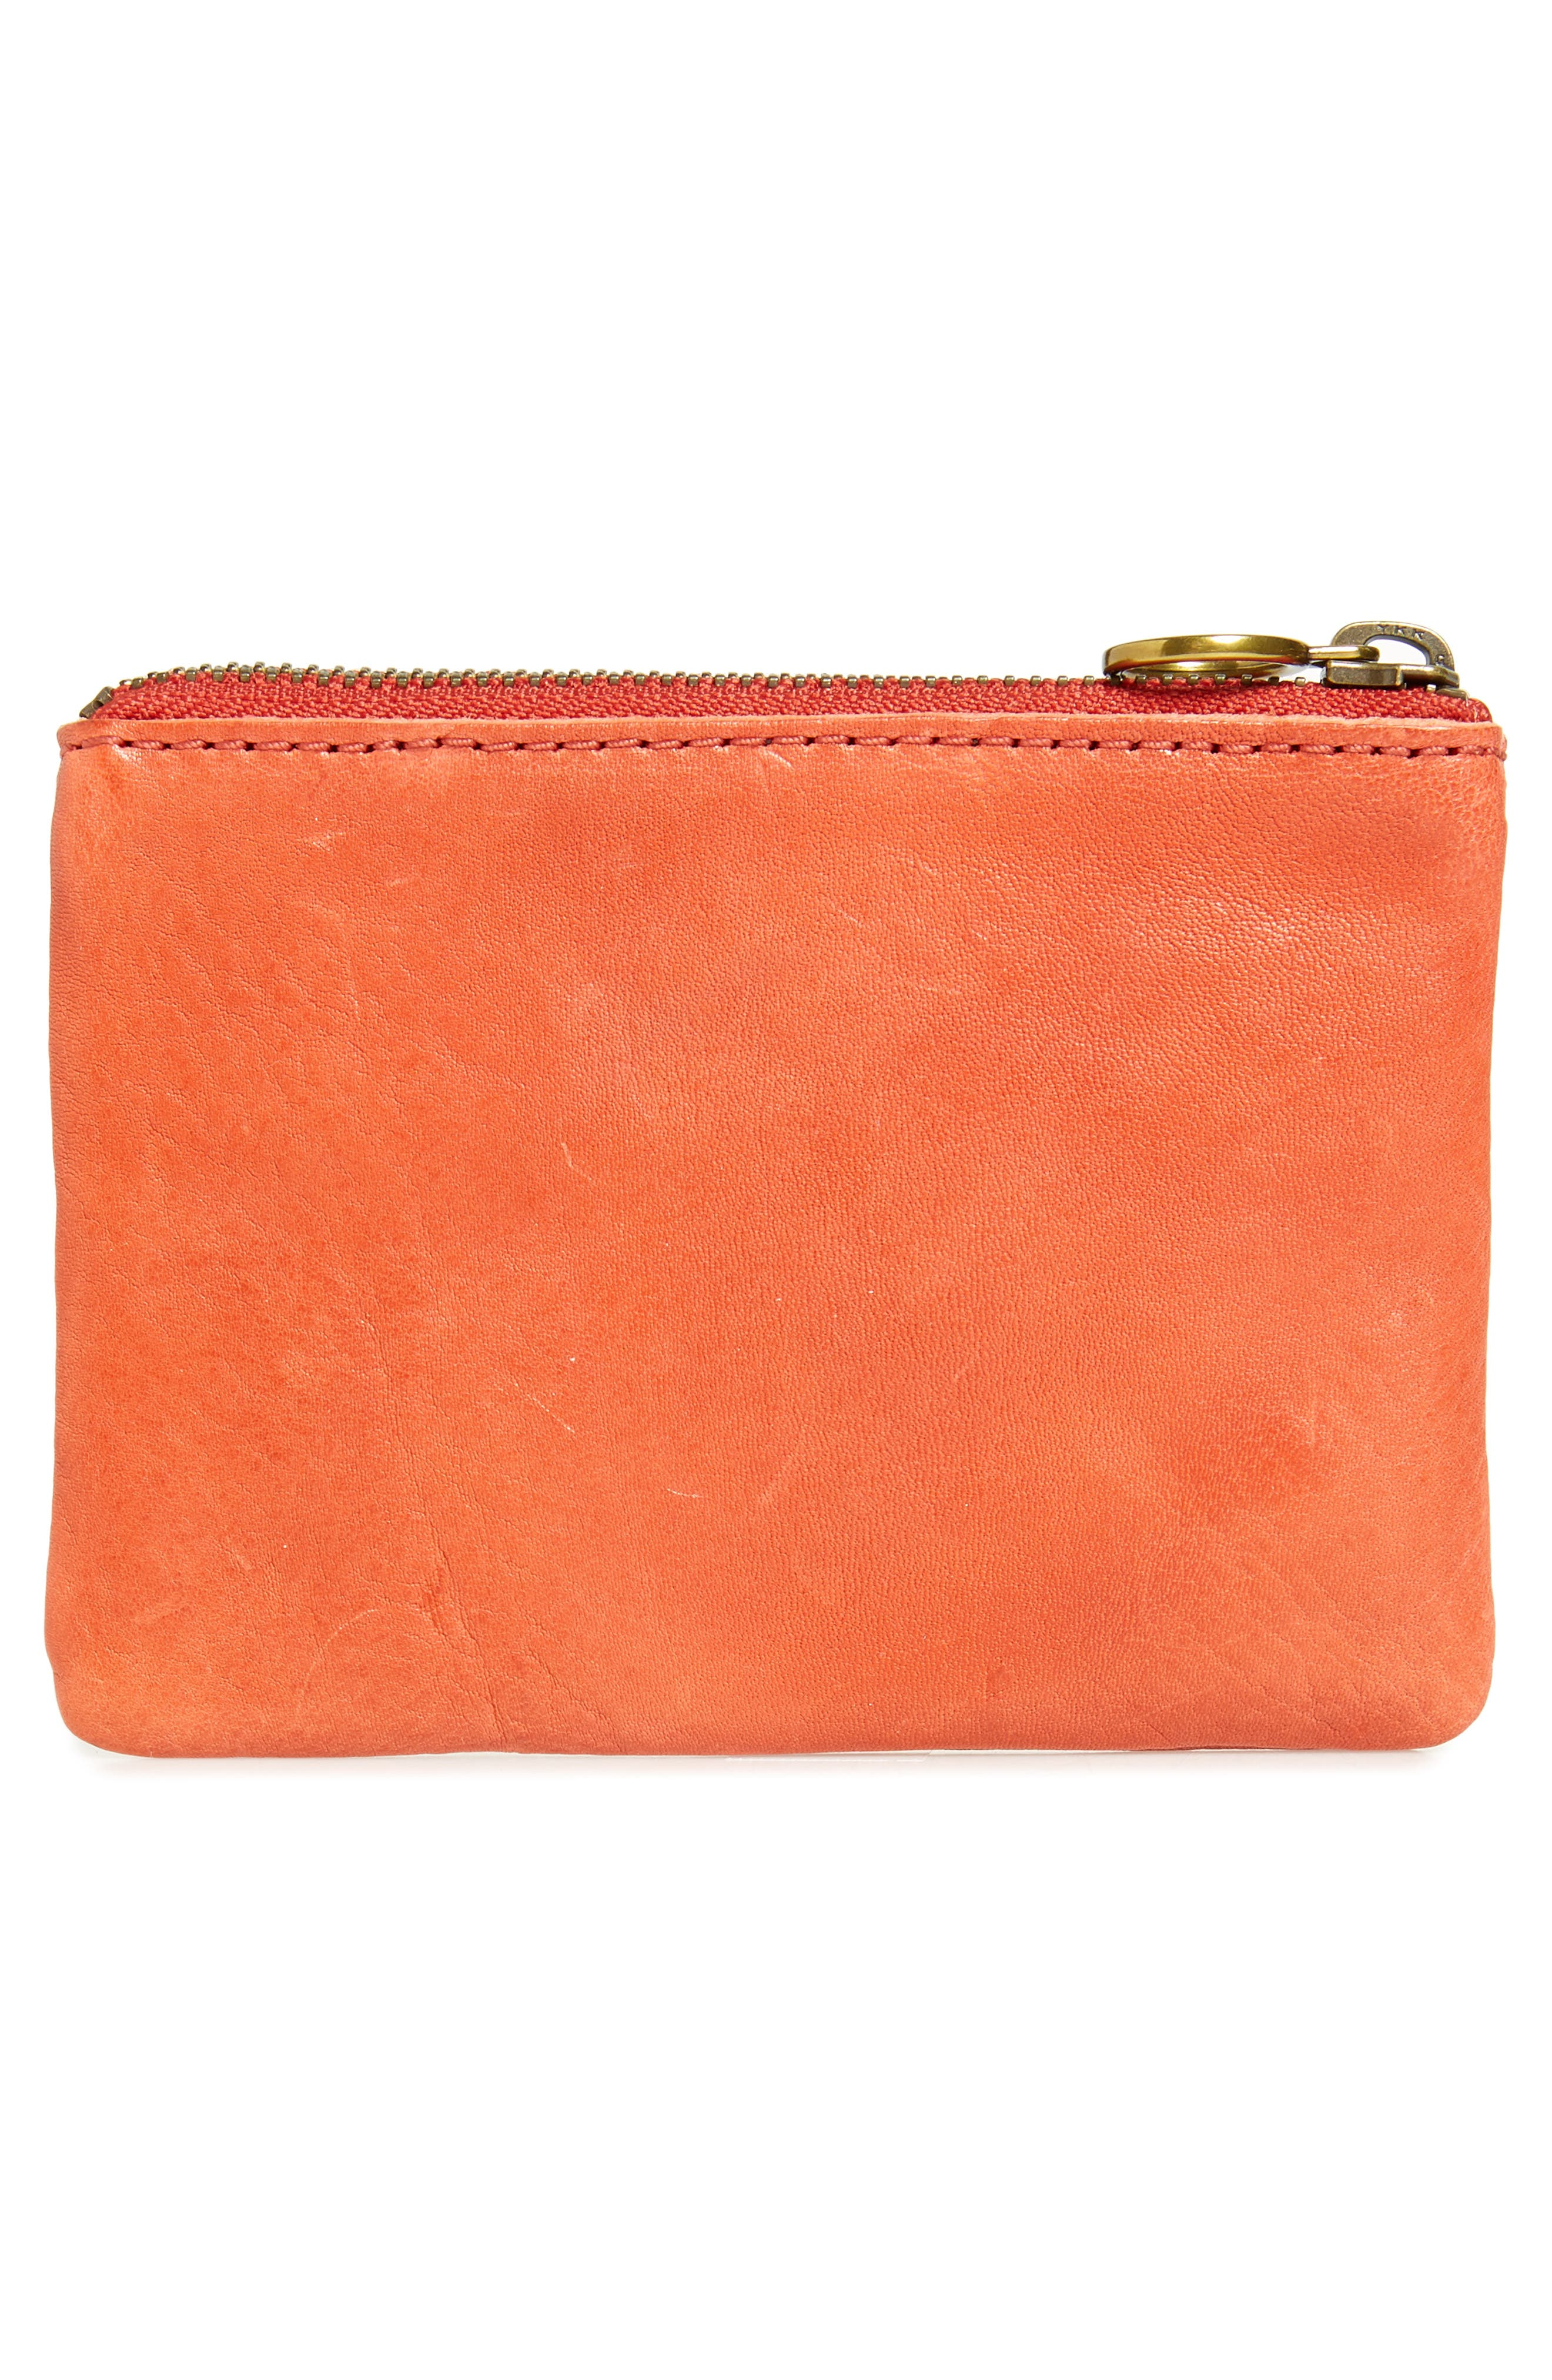 Eye Embroidered Leather Zip Pouch,                             Alternate thumbnail 3, color,                             600